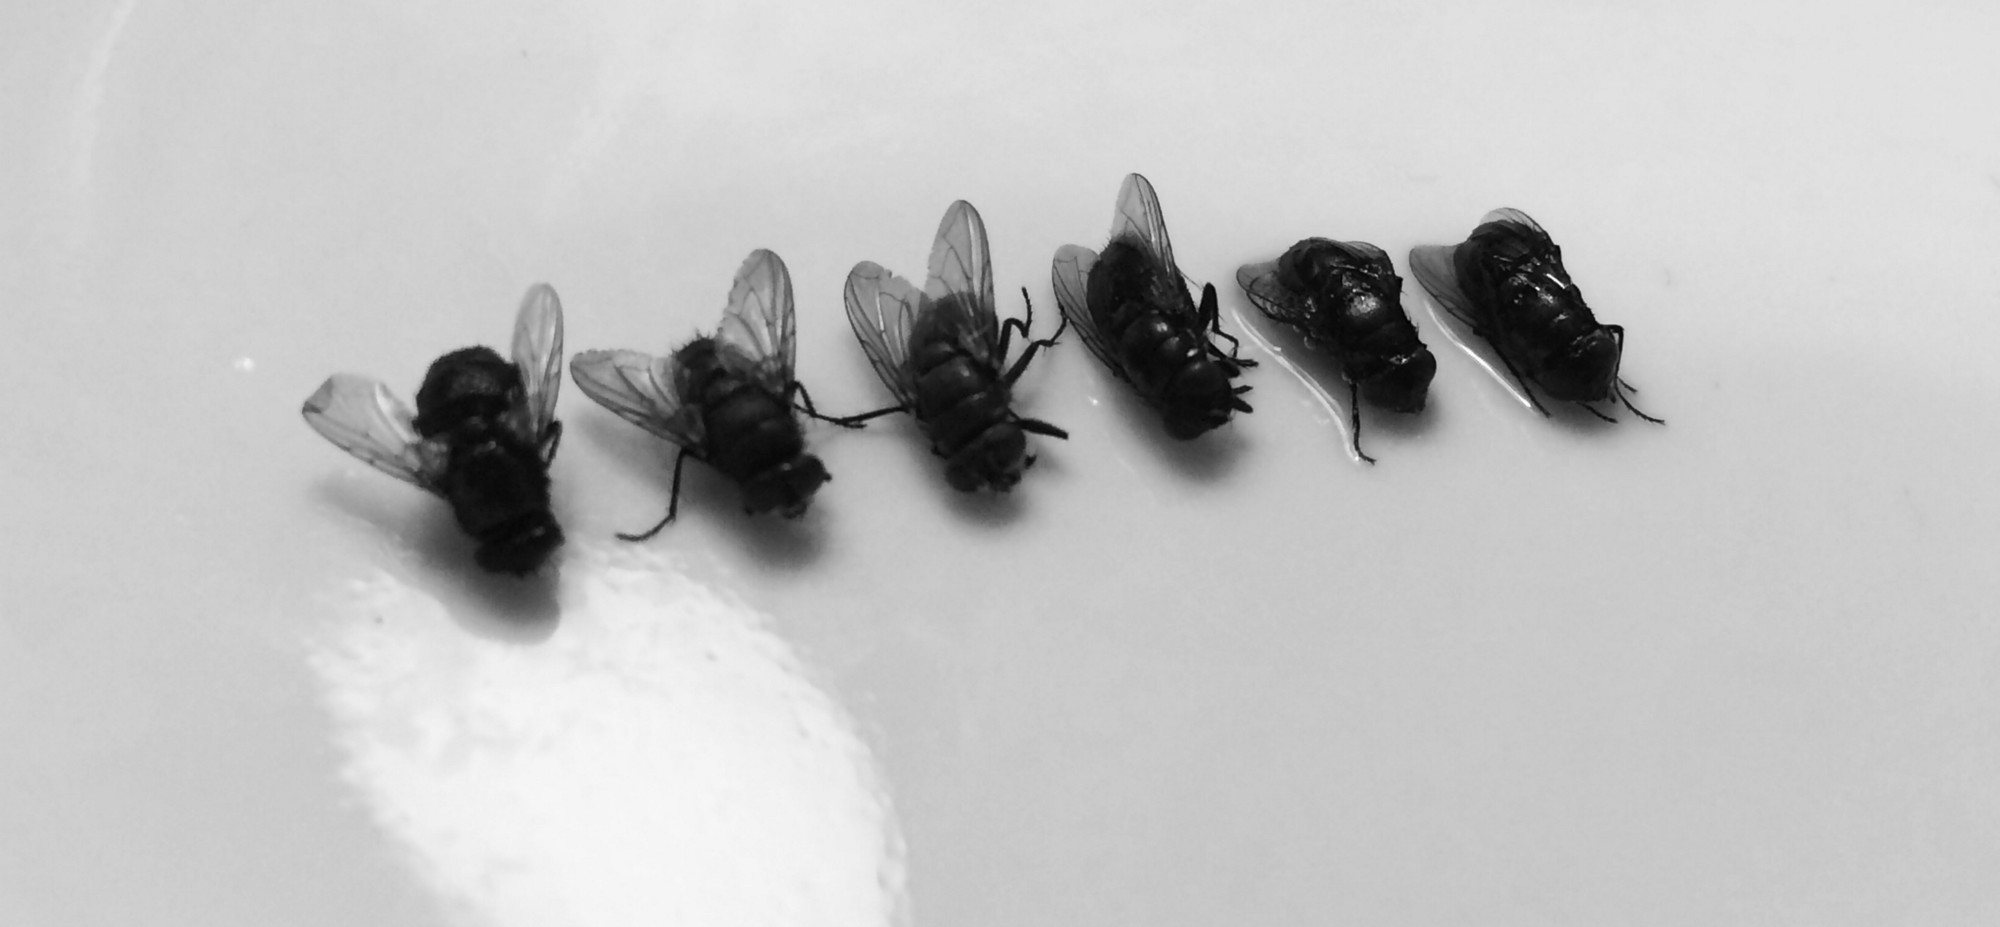 How to get rid of annoying kitchen blackflies